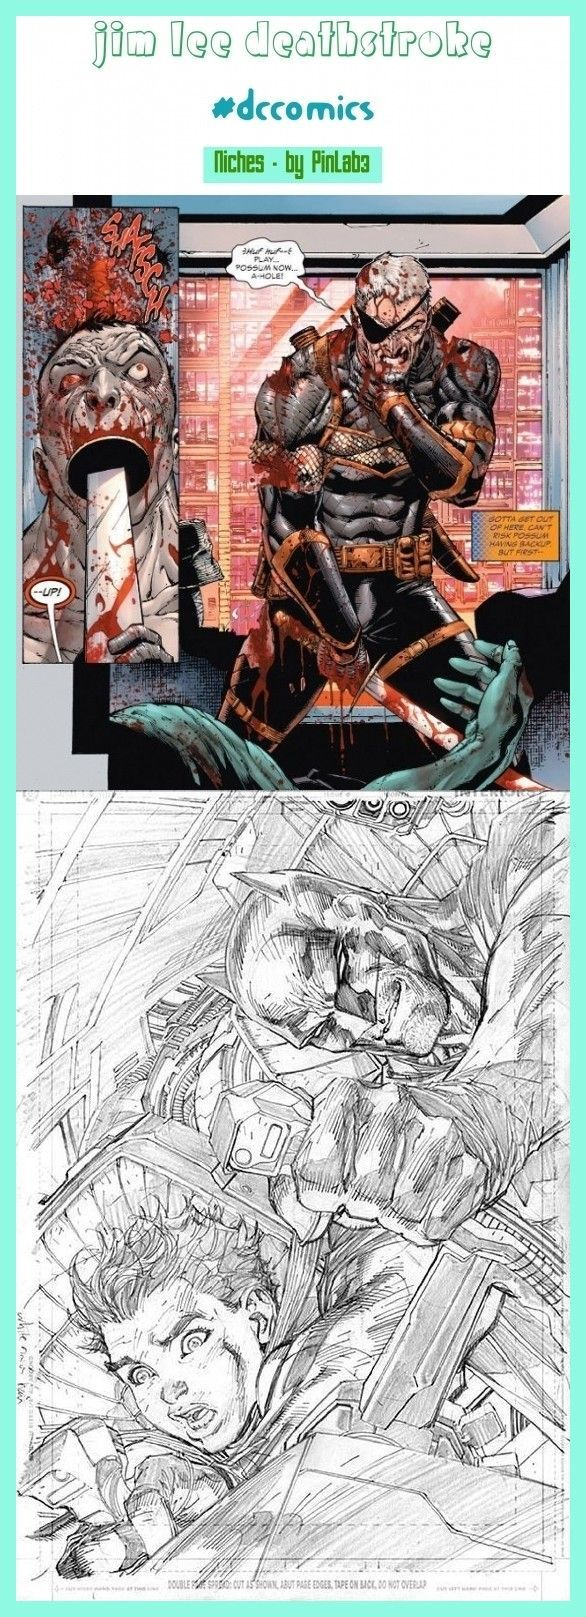 Jim Lee Deathstroke jim lee art, jim lee sketch, jim lee joker, ...